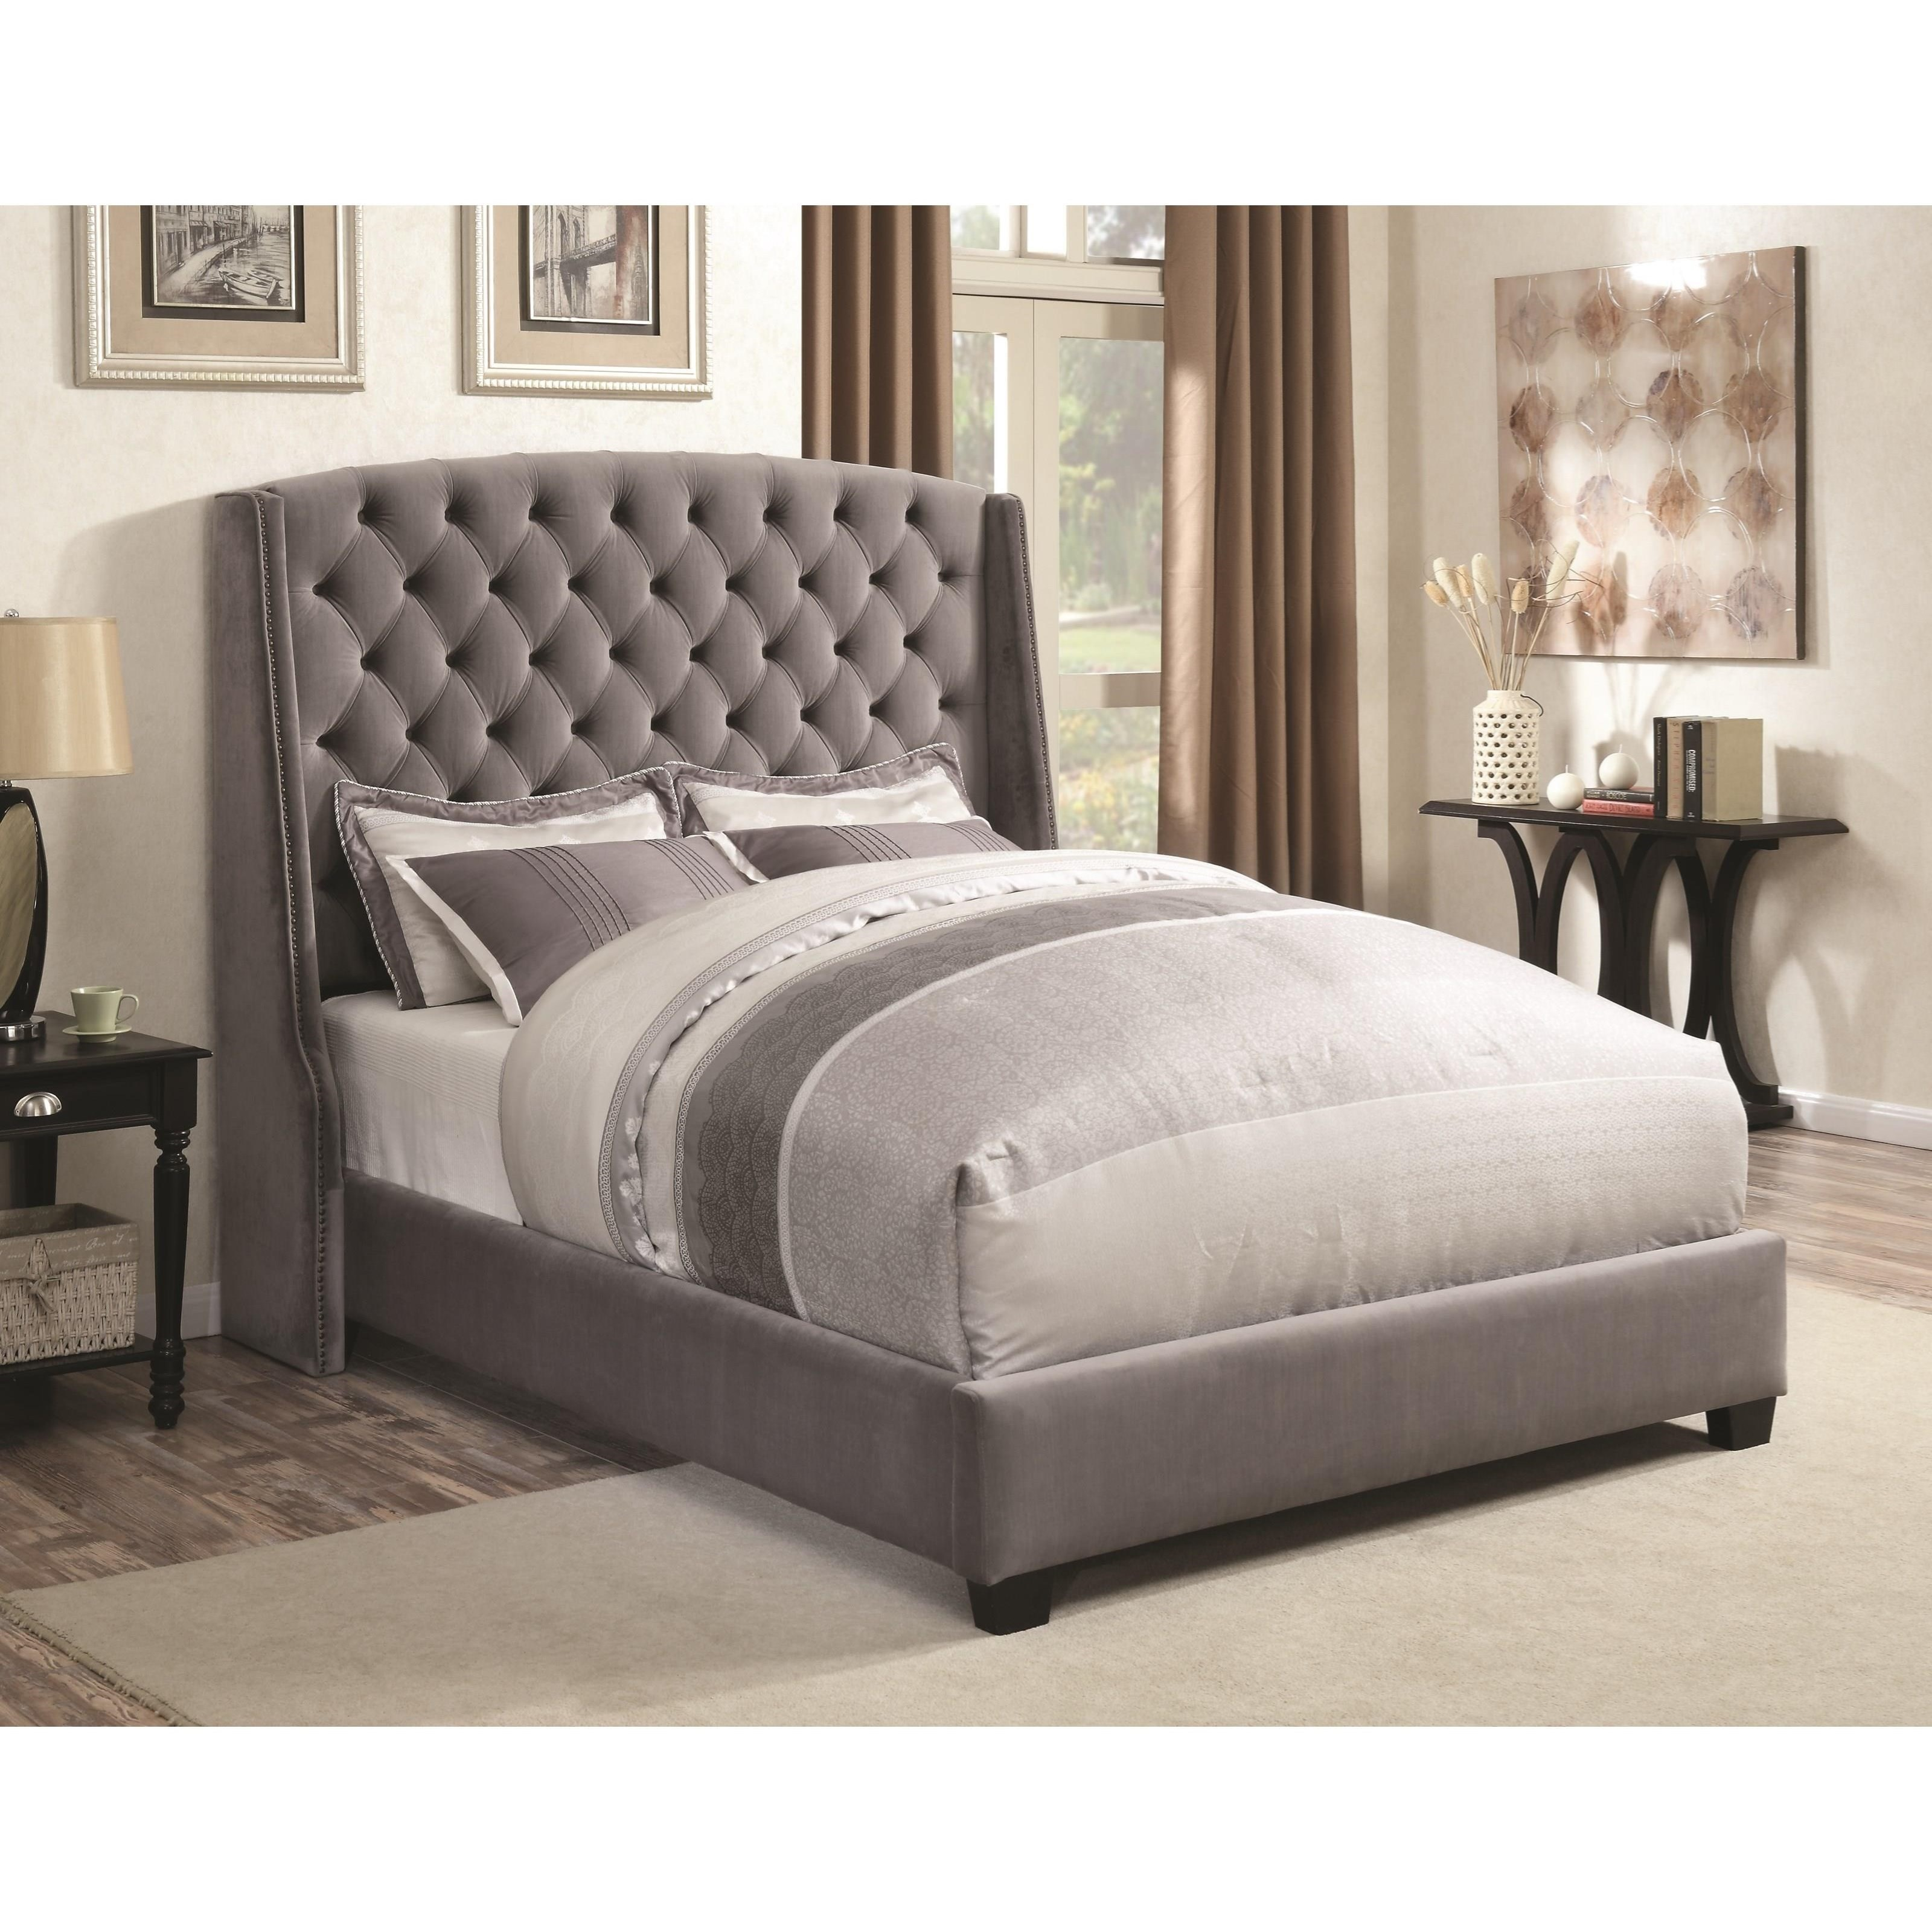 Pissarro Wingback Upholstered King Bed